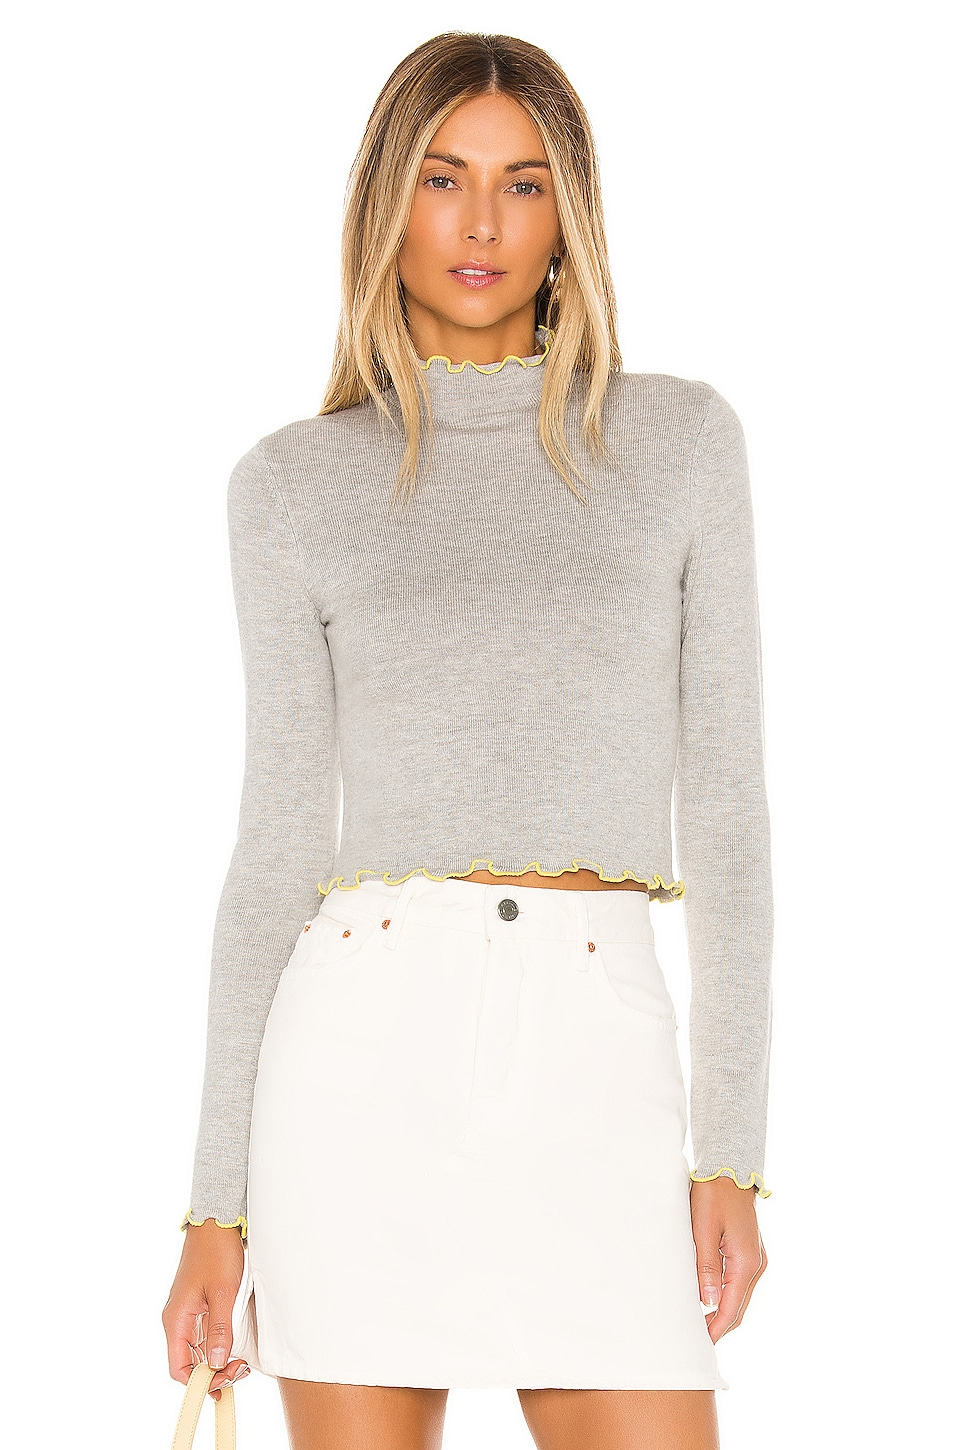 MAJORELLE Gia Sweater in Grey